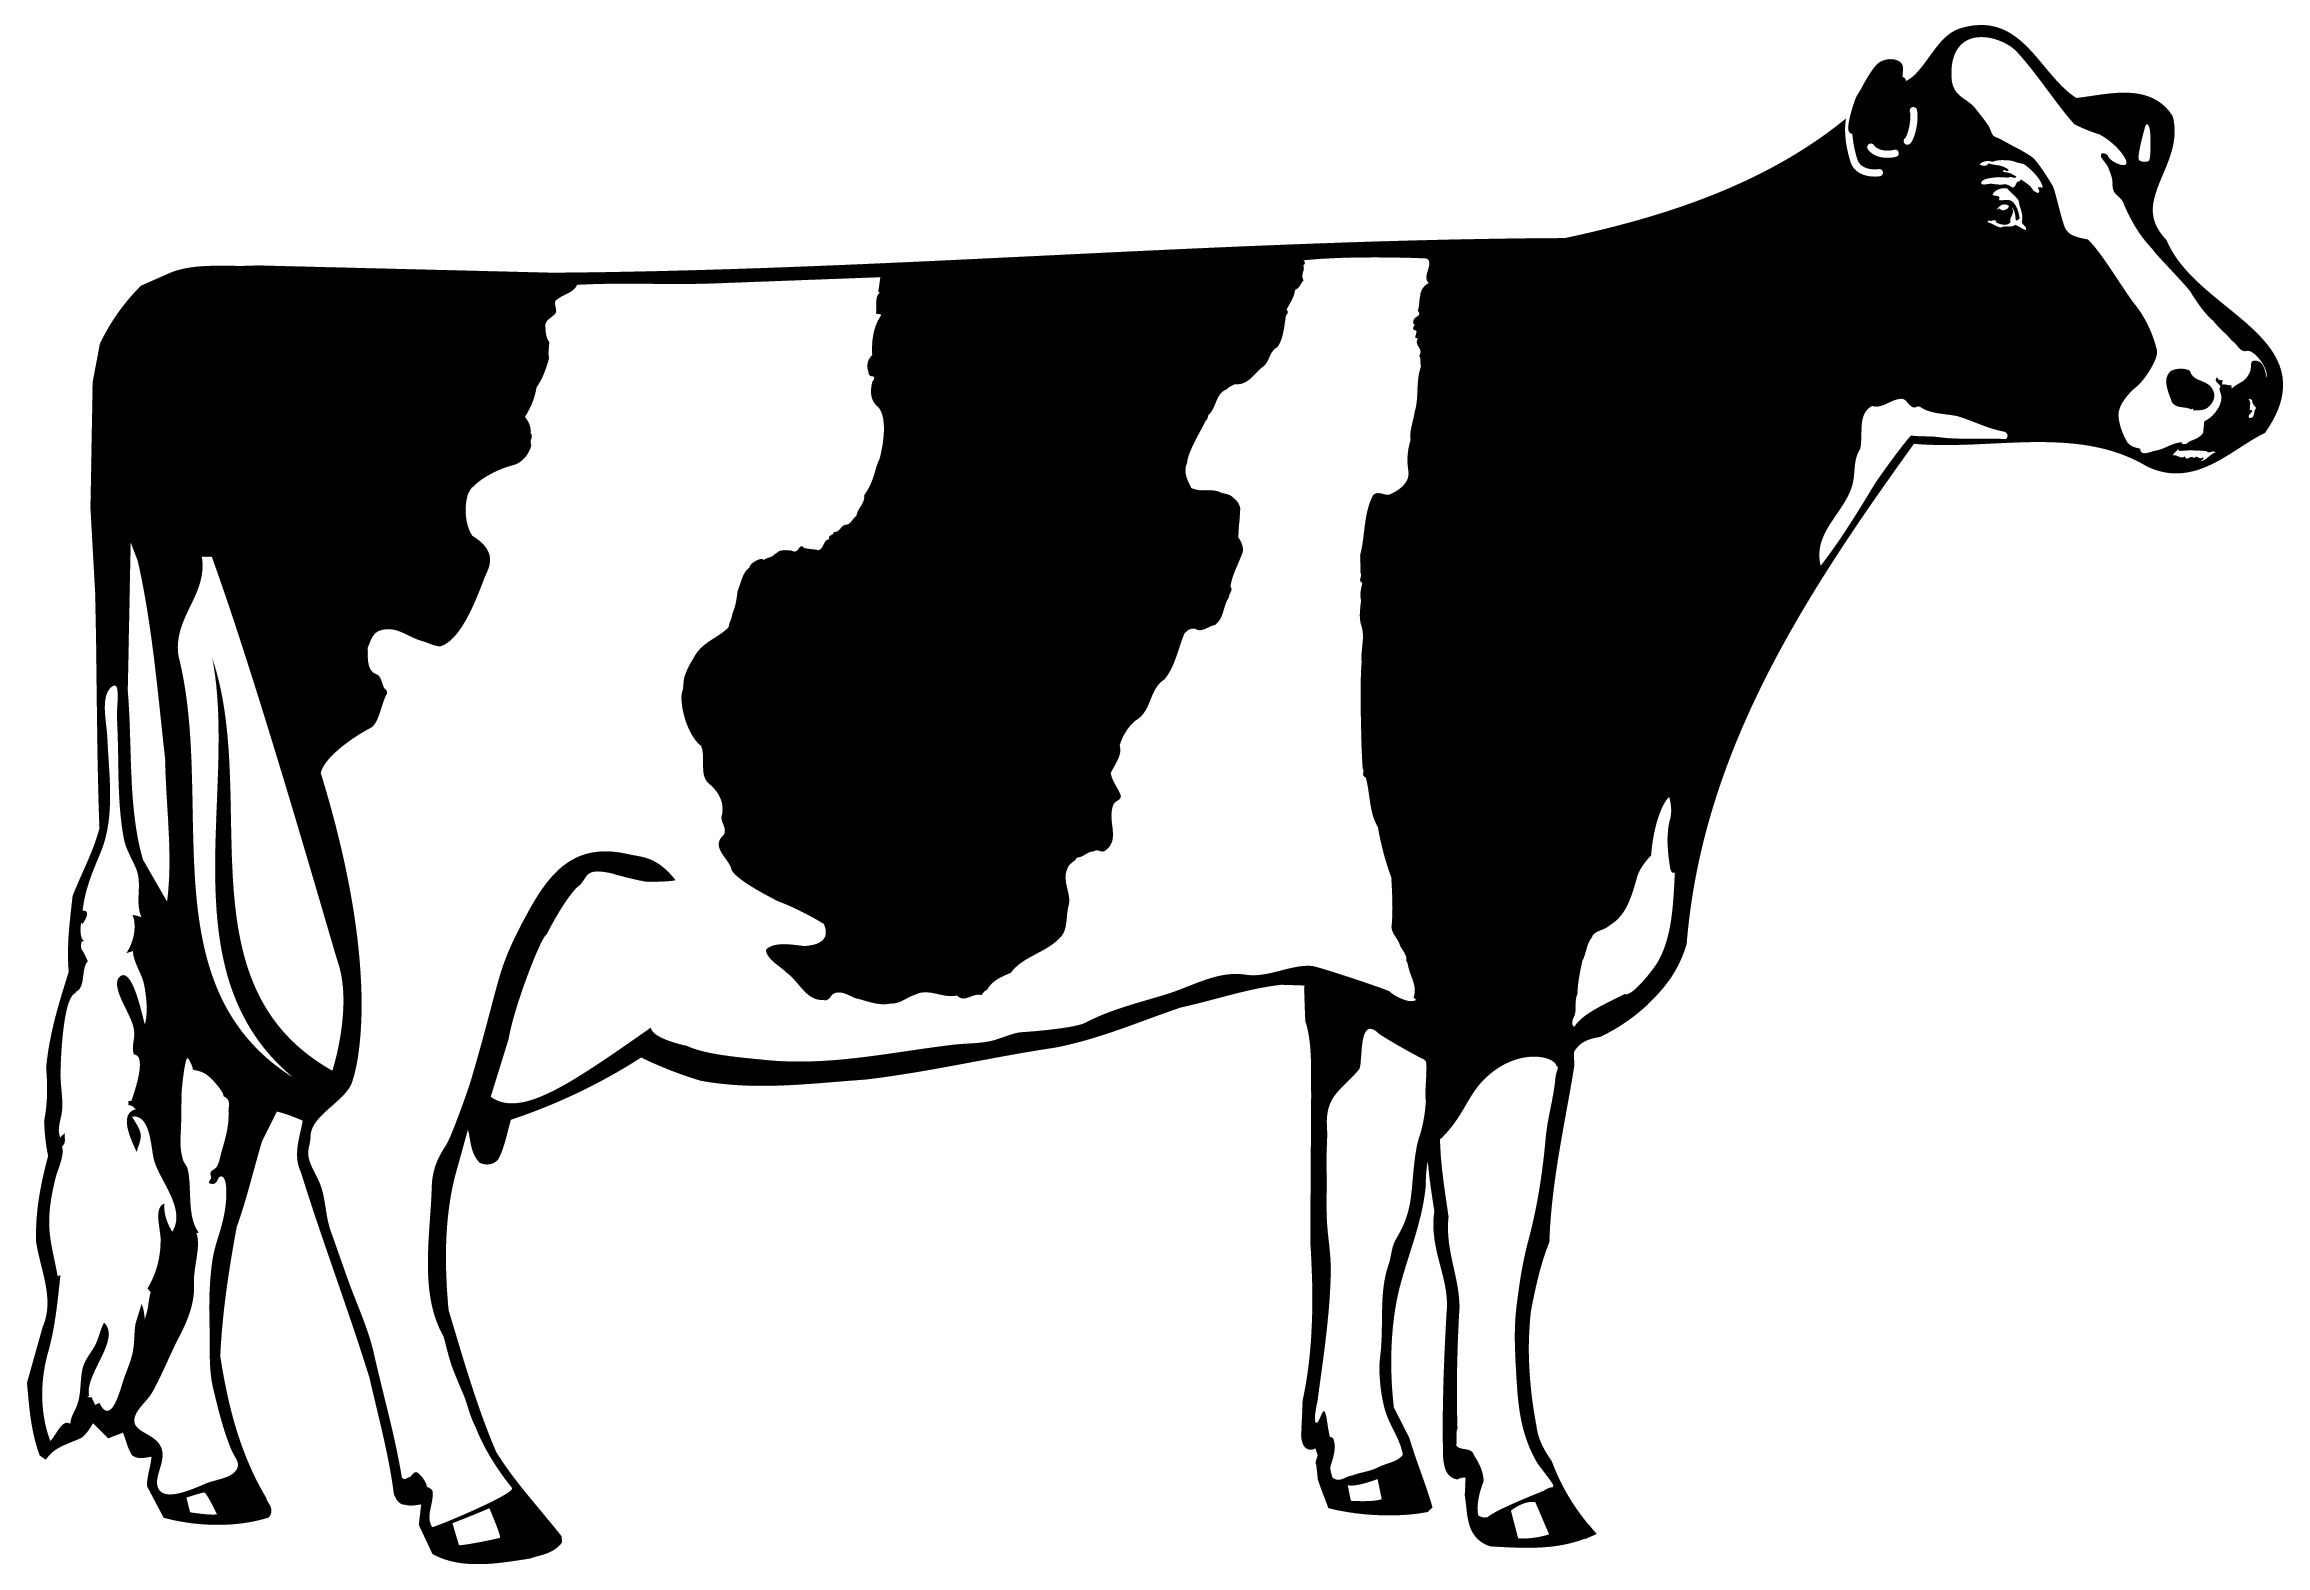 Beef clipart beef cattle, Beef beef cattle Transparent FREE.